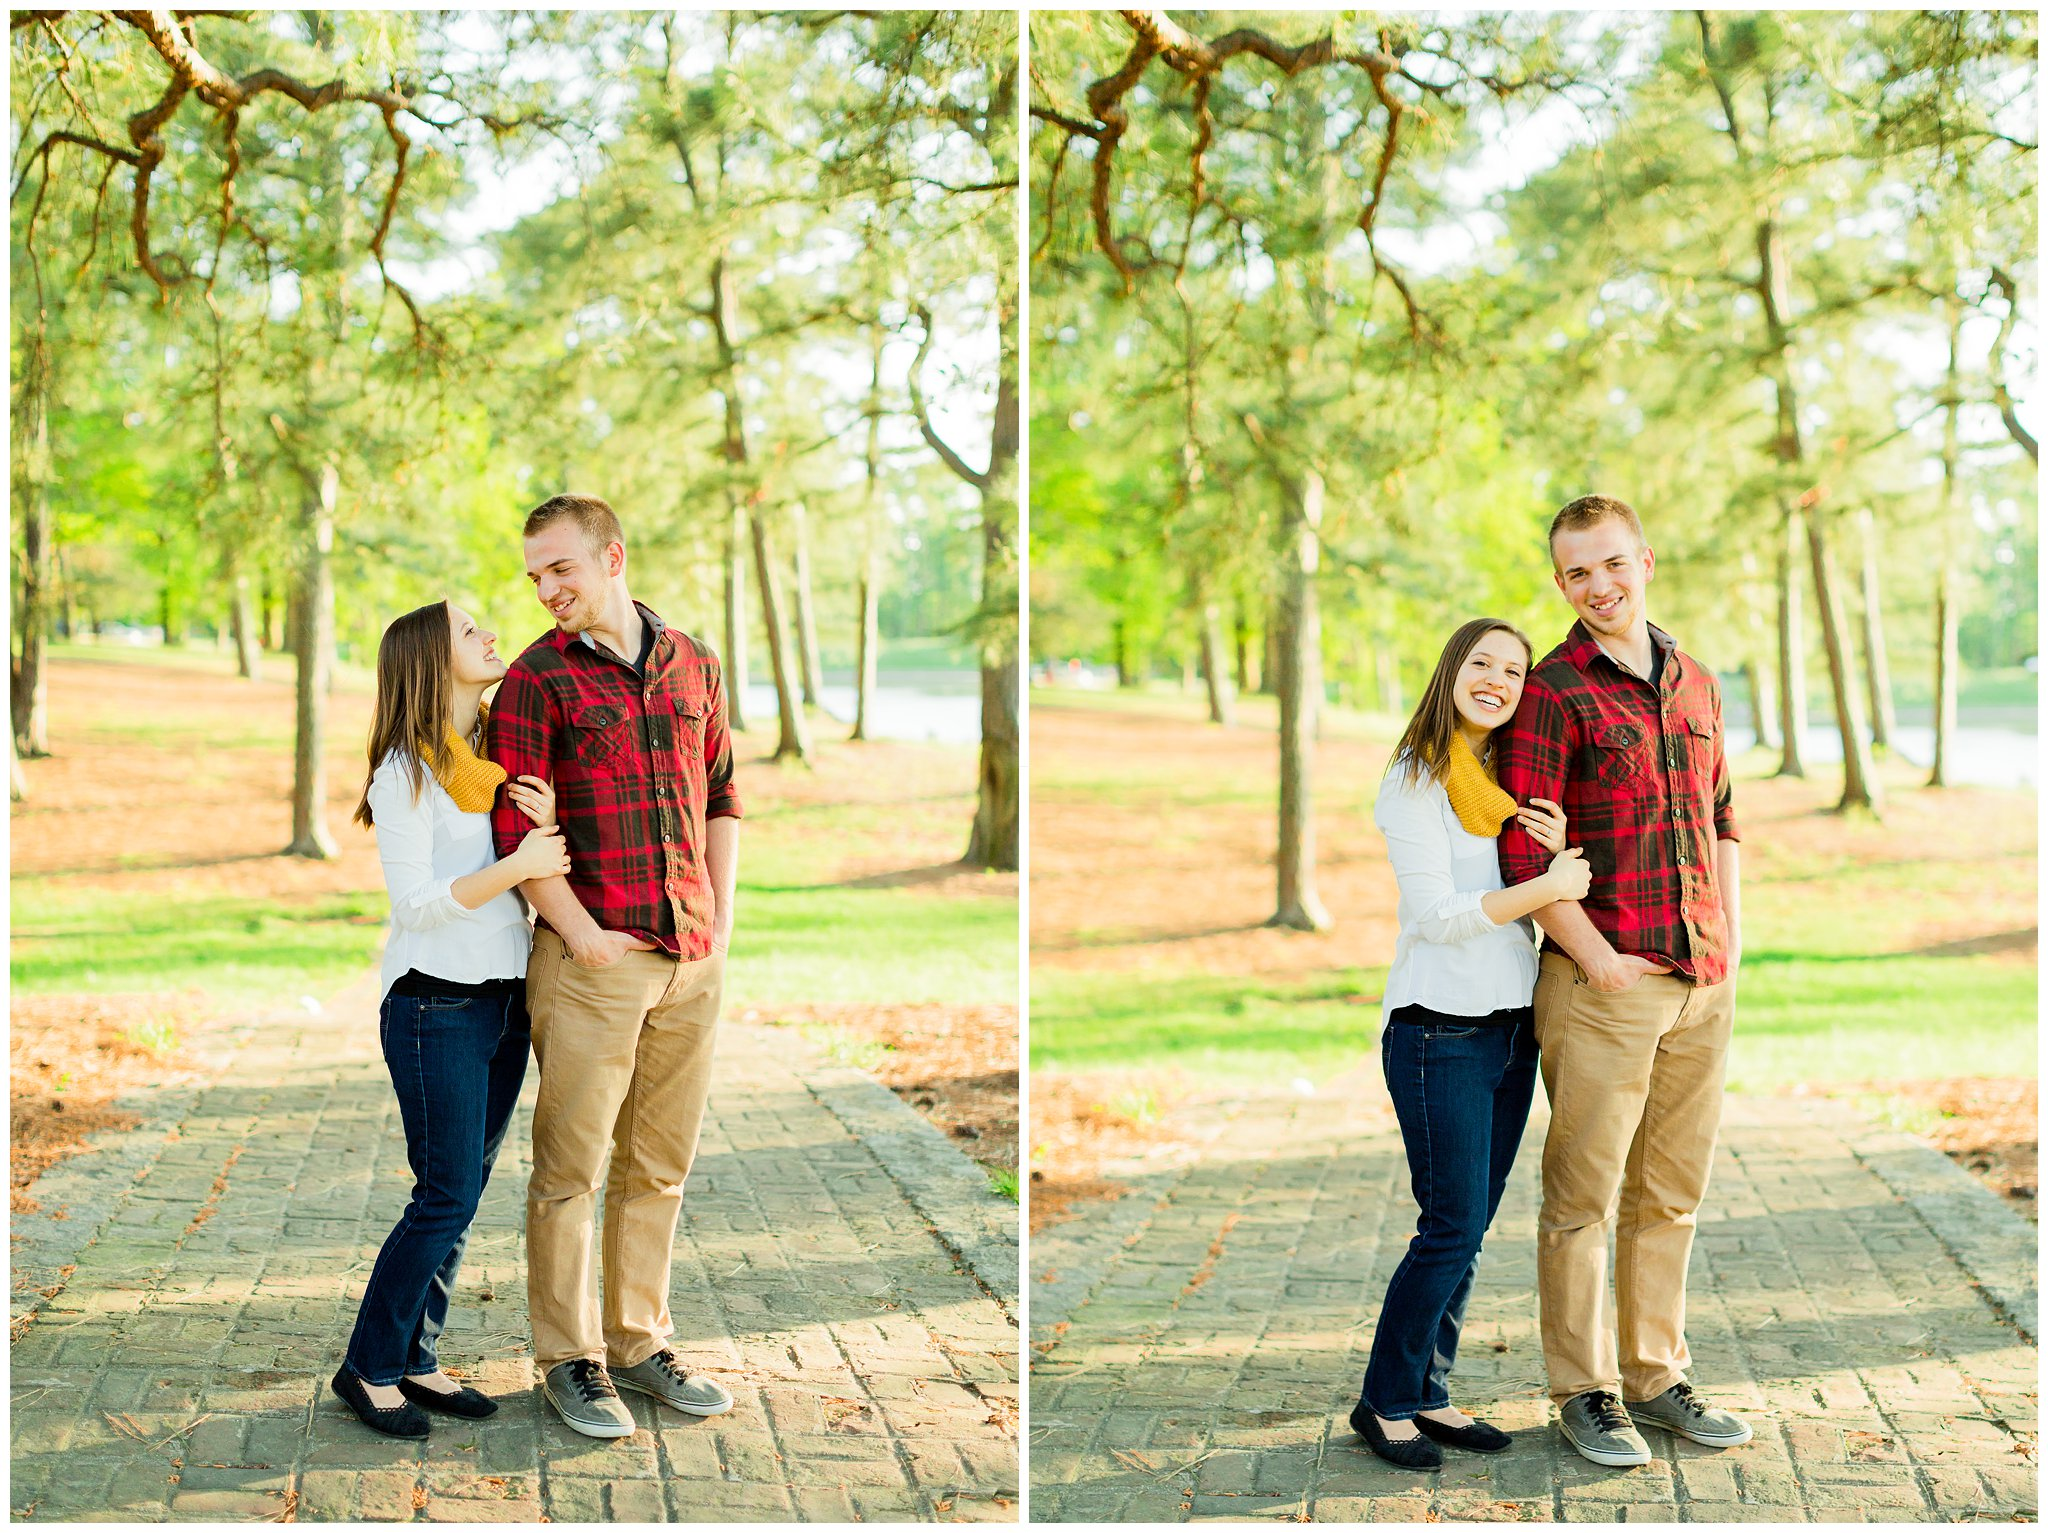 Maymont Richmond Engagement Session Engaged Couple Garden Park Gazebo Fairytale Love